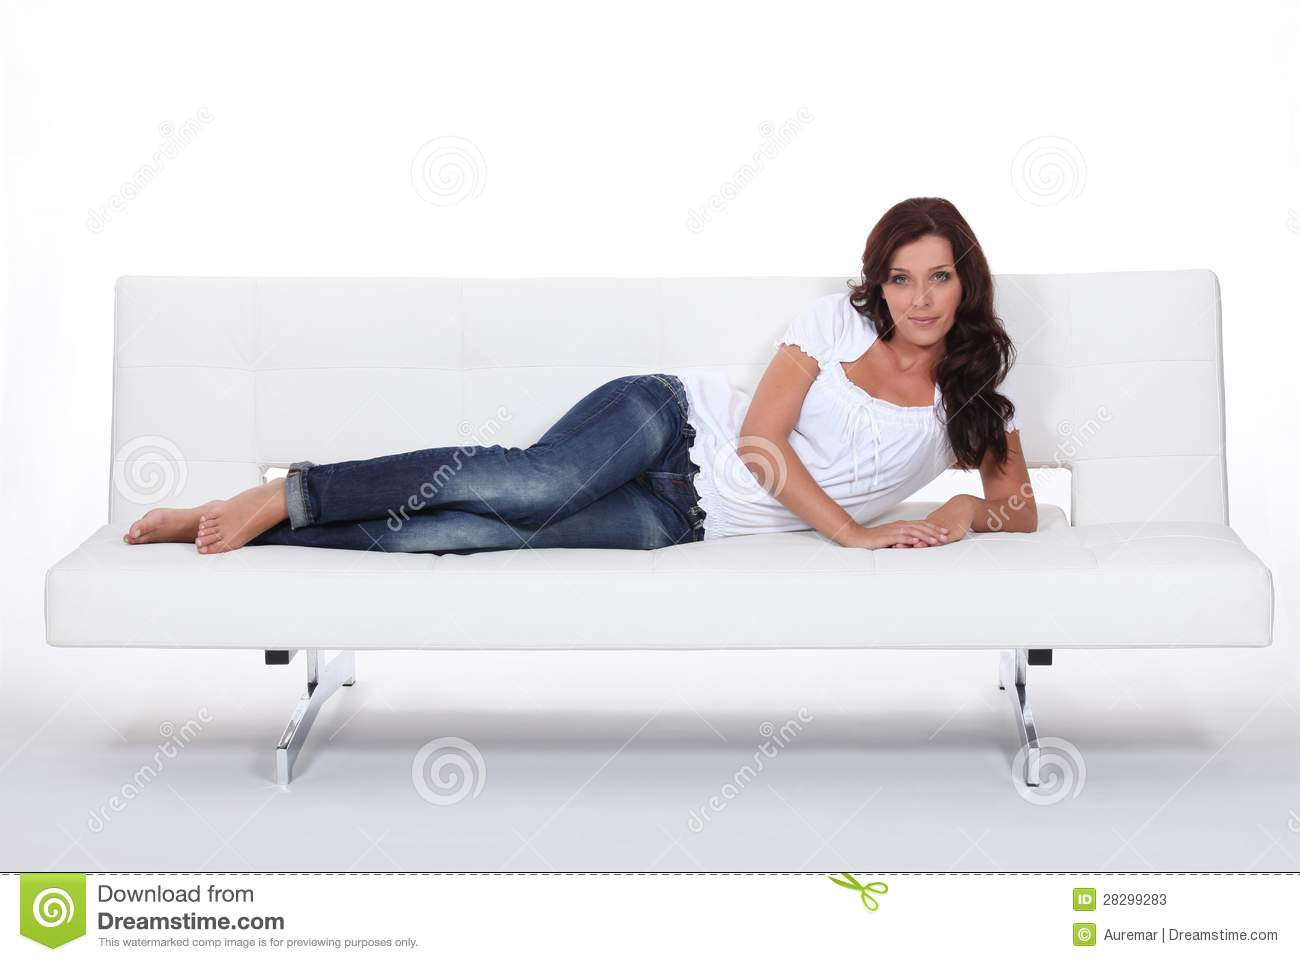 Model Laid On Expensive Sofa Stock Photos - Image: 28299283